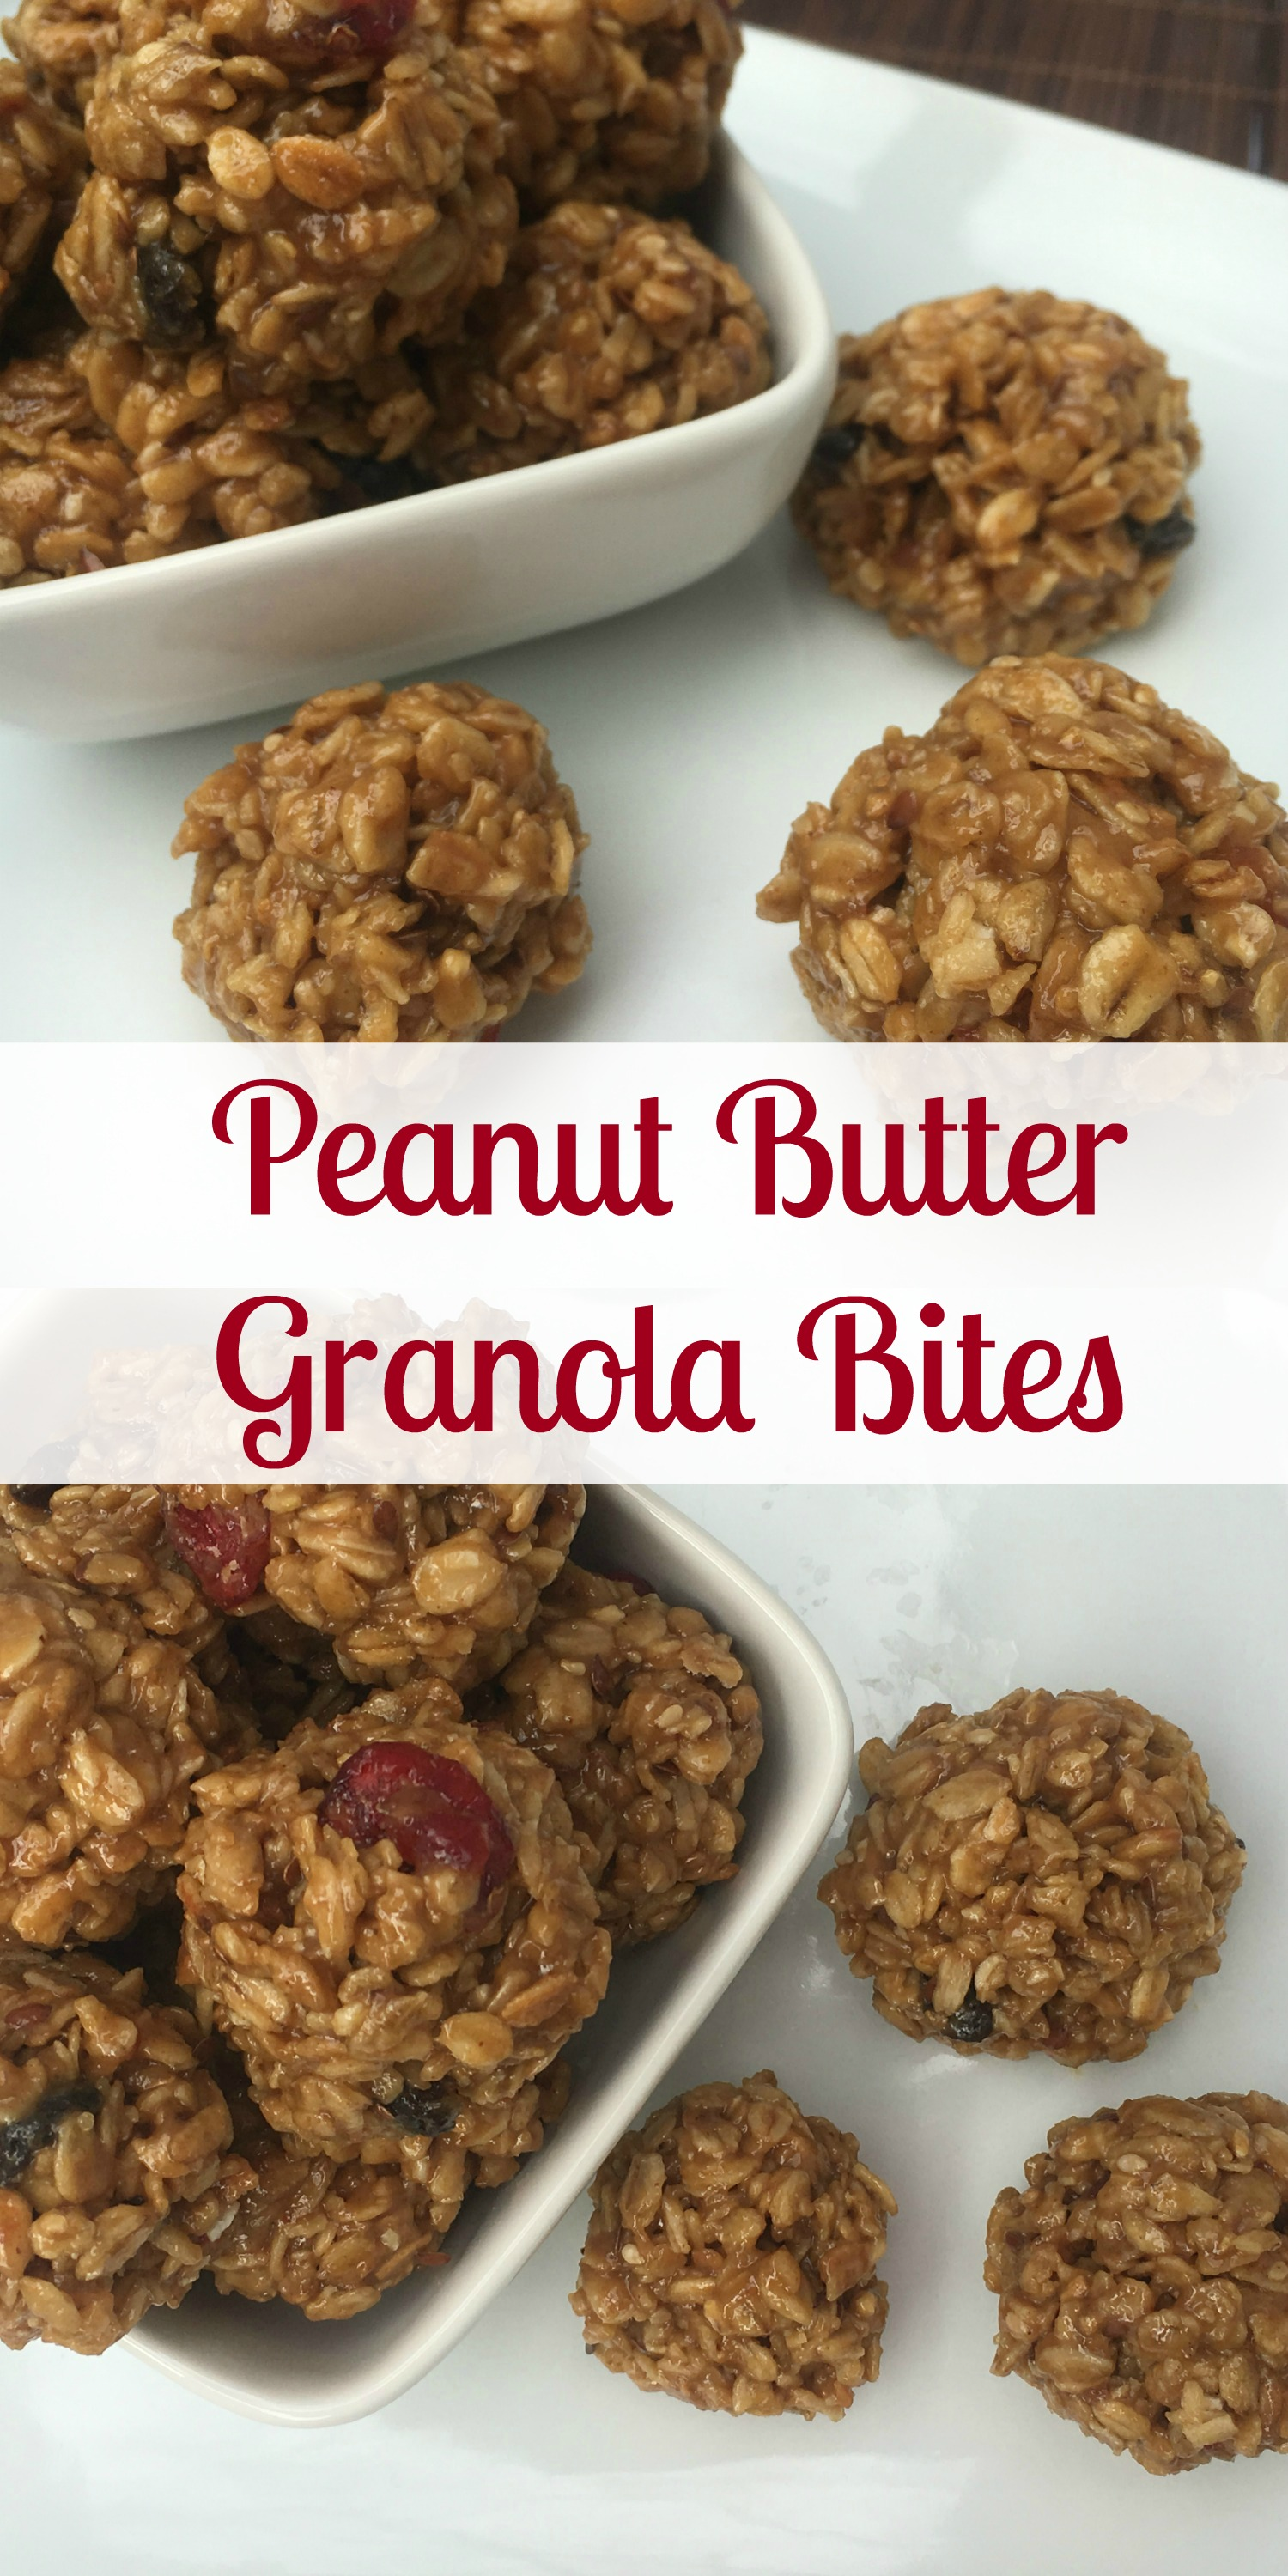 Peanut Butter Granola Bites Collage #ad